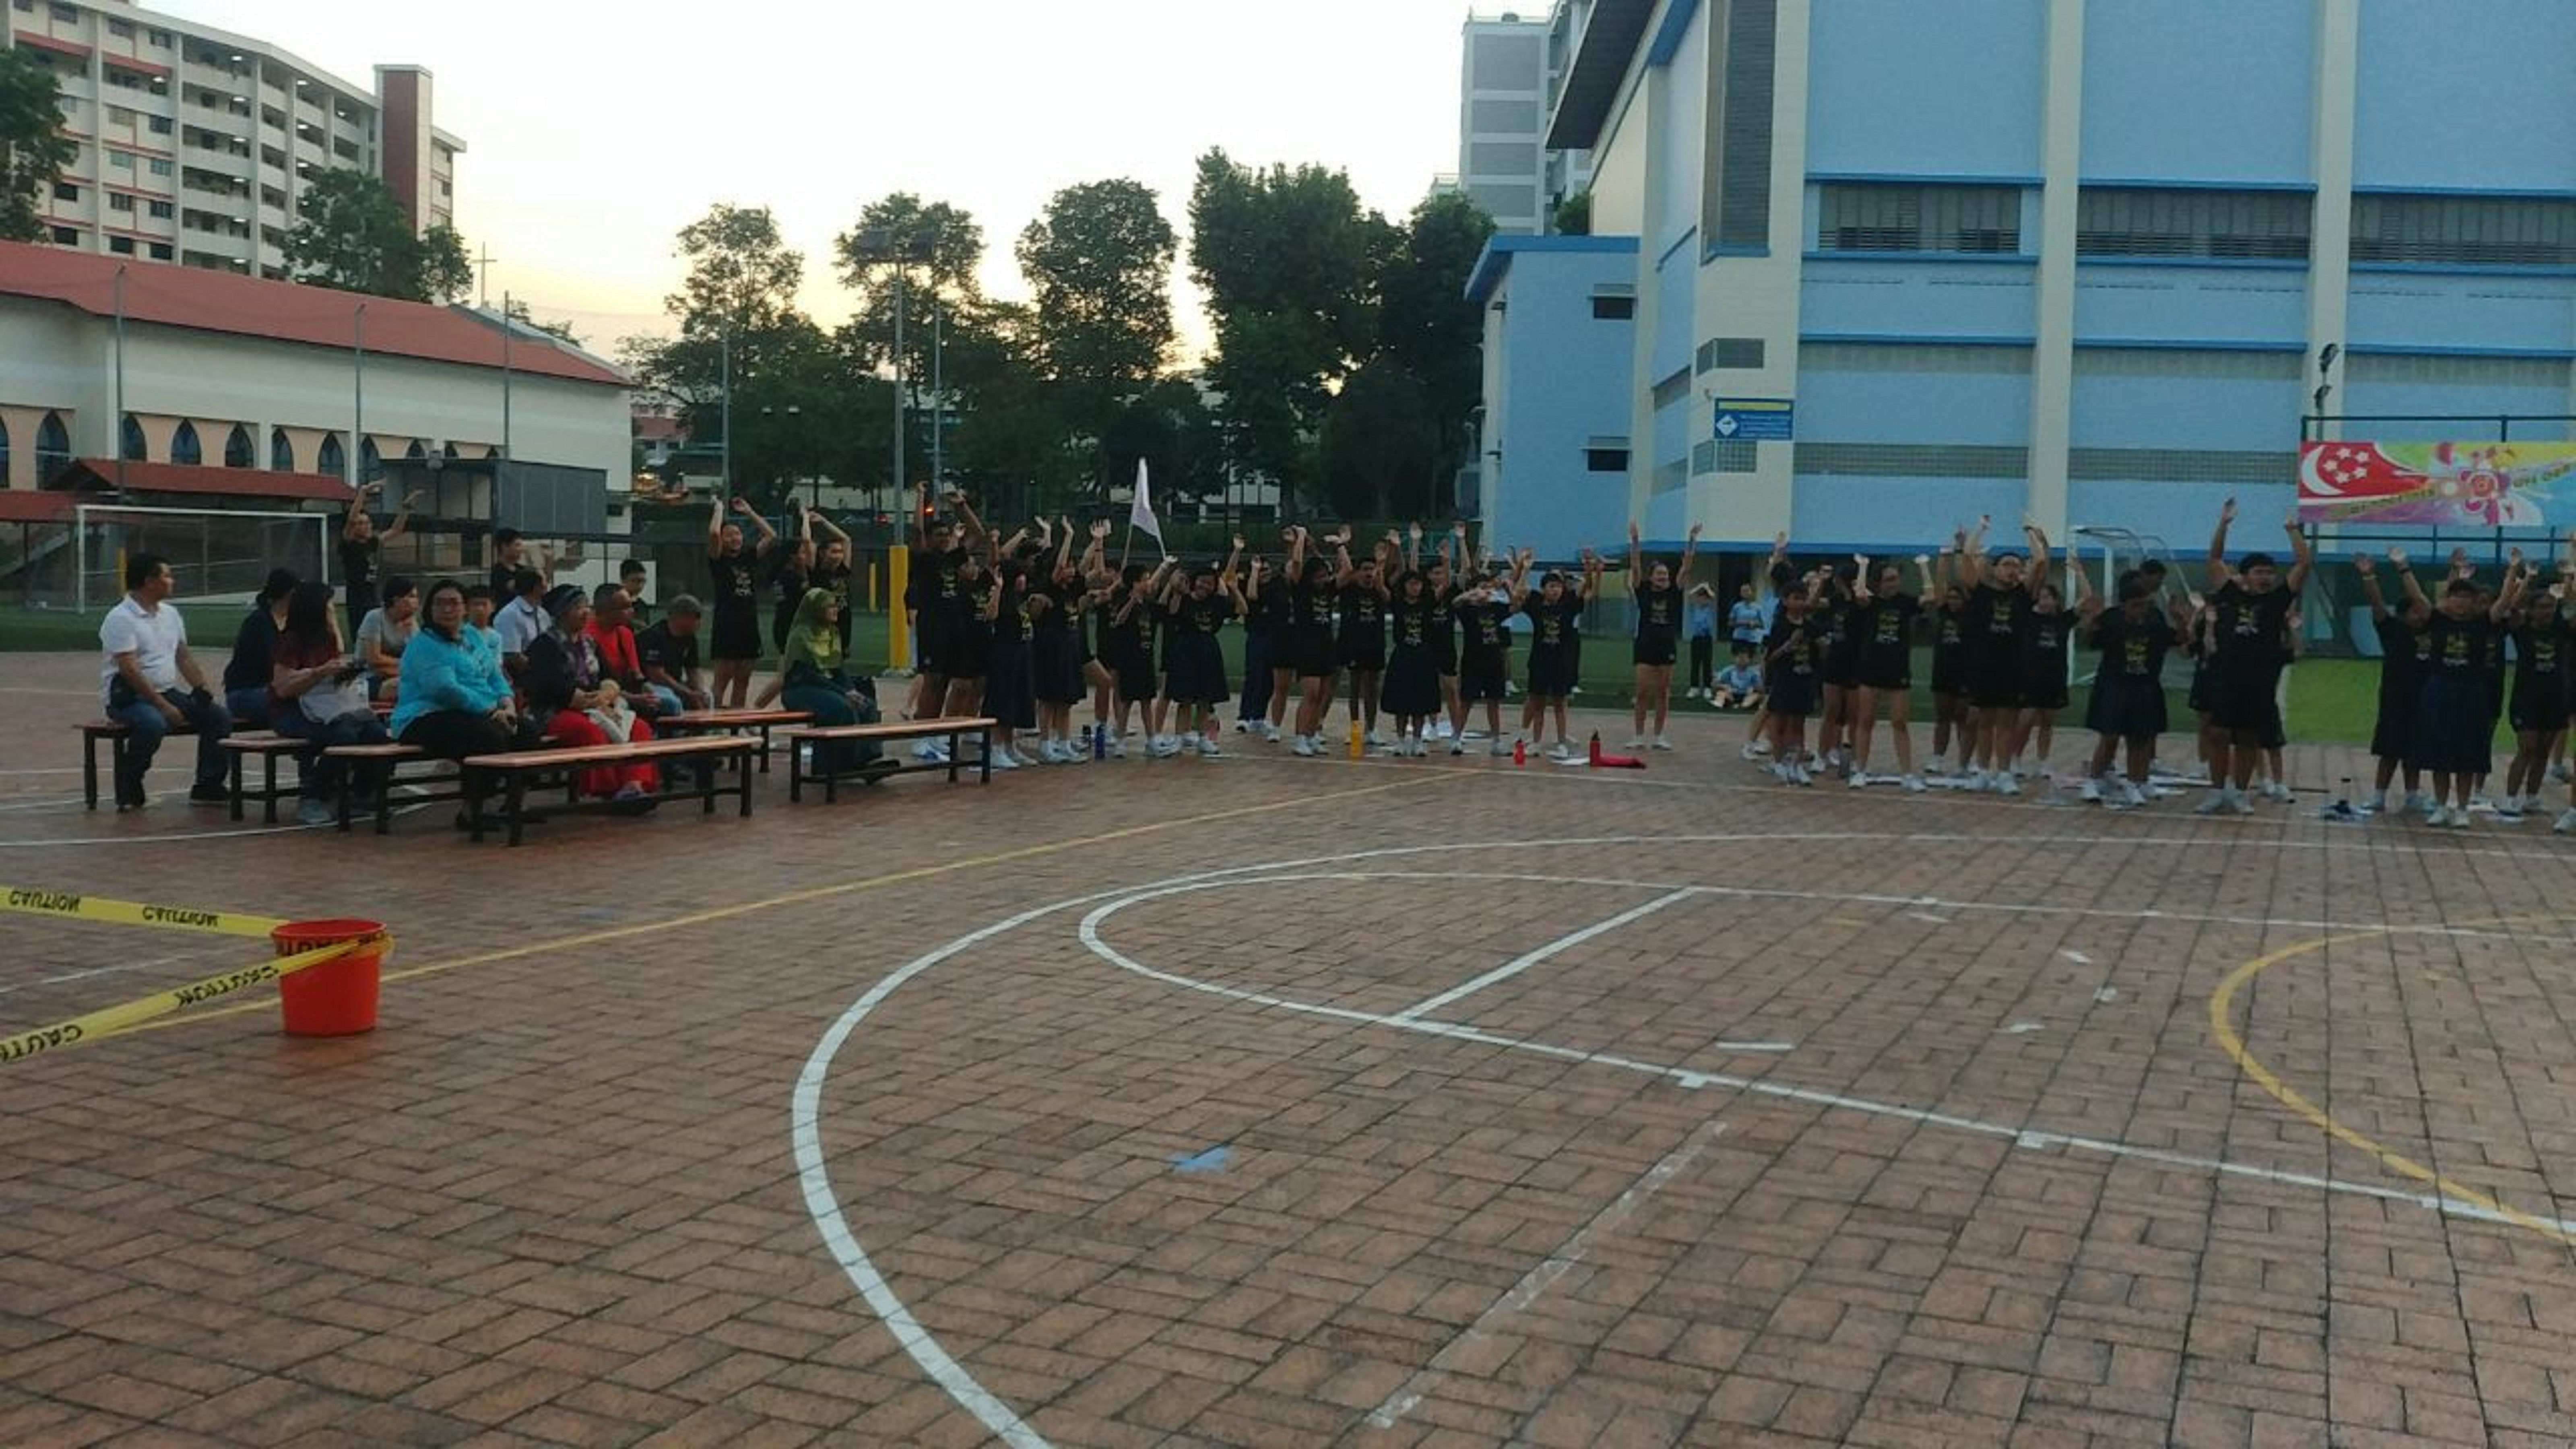 Student council assembly at basketball court (2).jpg